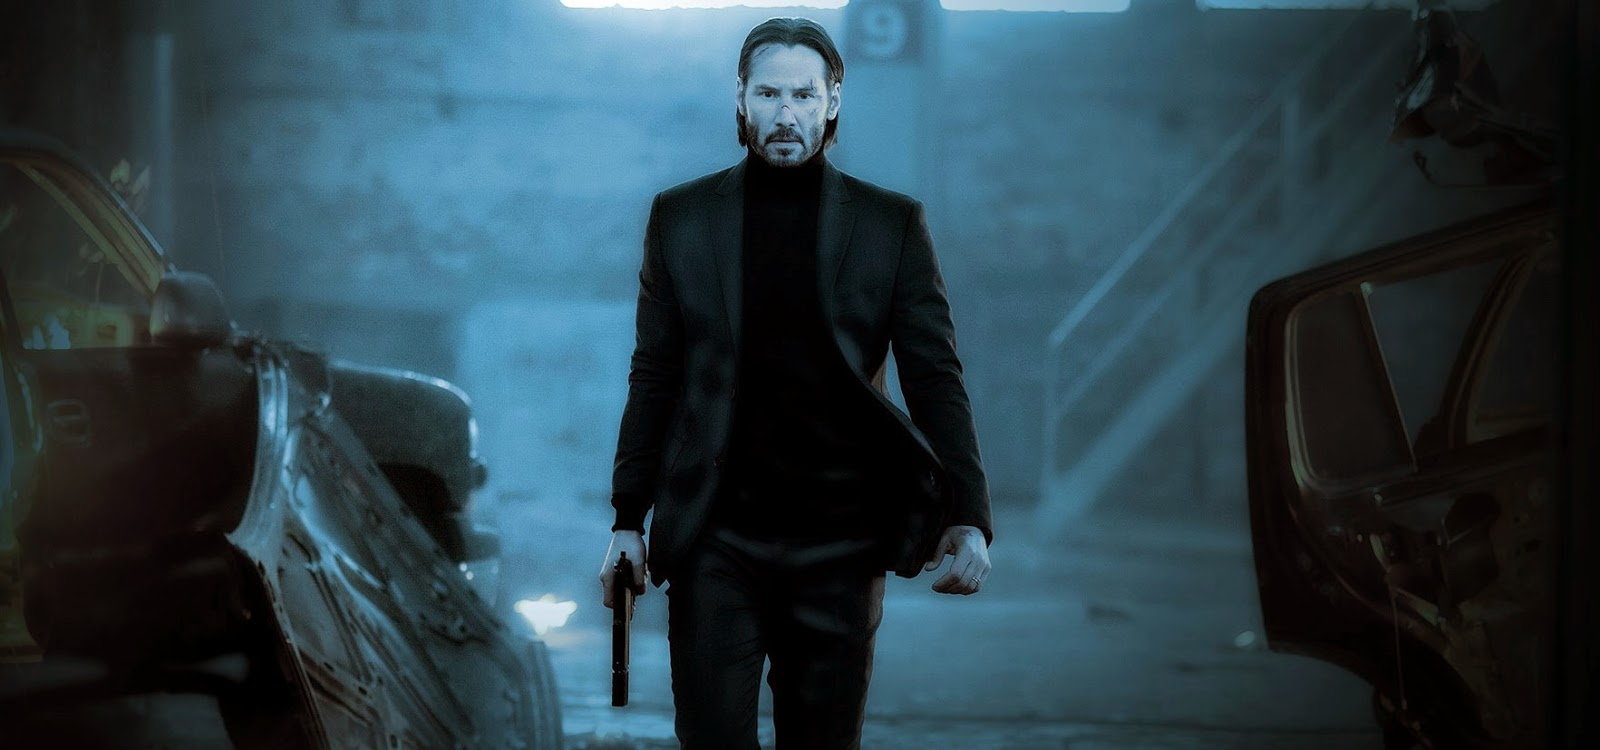 Keanu Reeves é um assassino implacável no primeiro trailer de John Wick